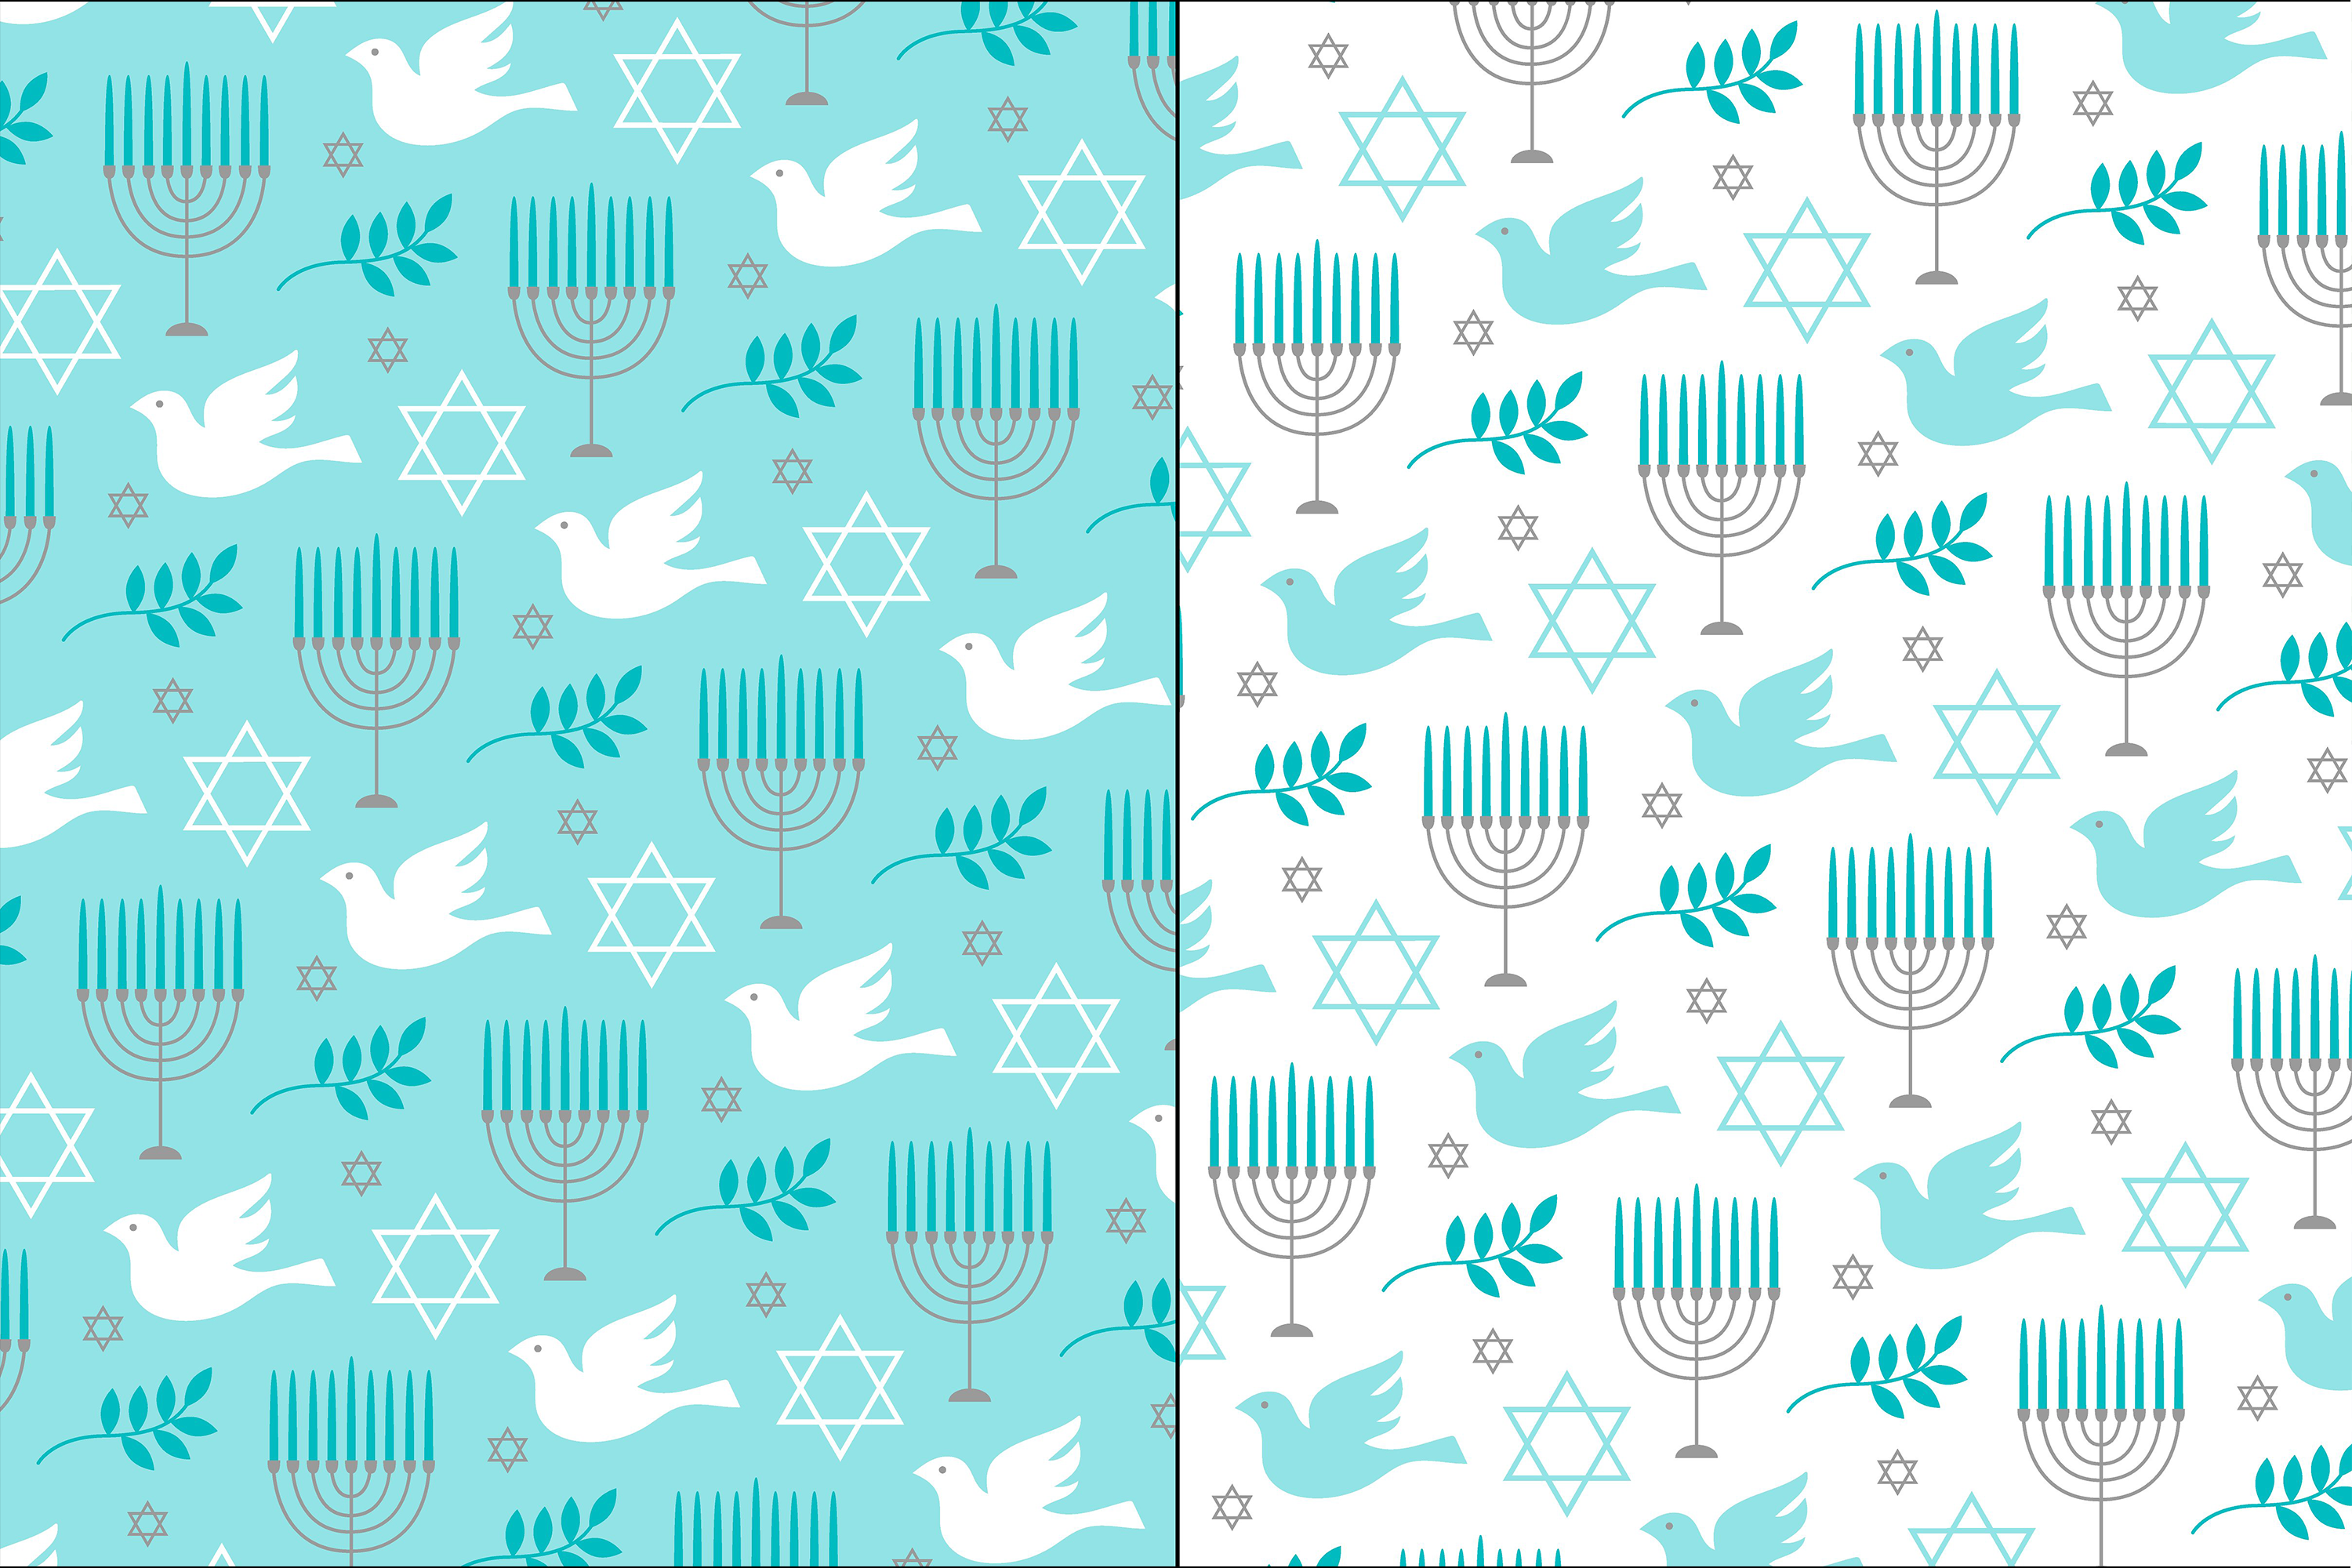 Blue Gray Hanukkah Patterns example image 5